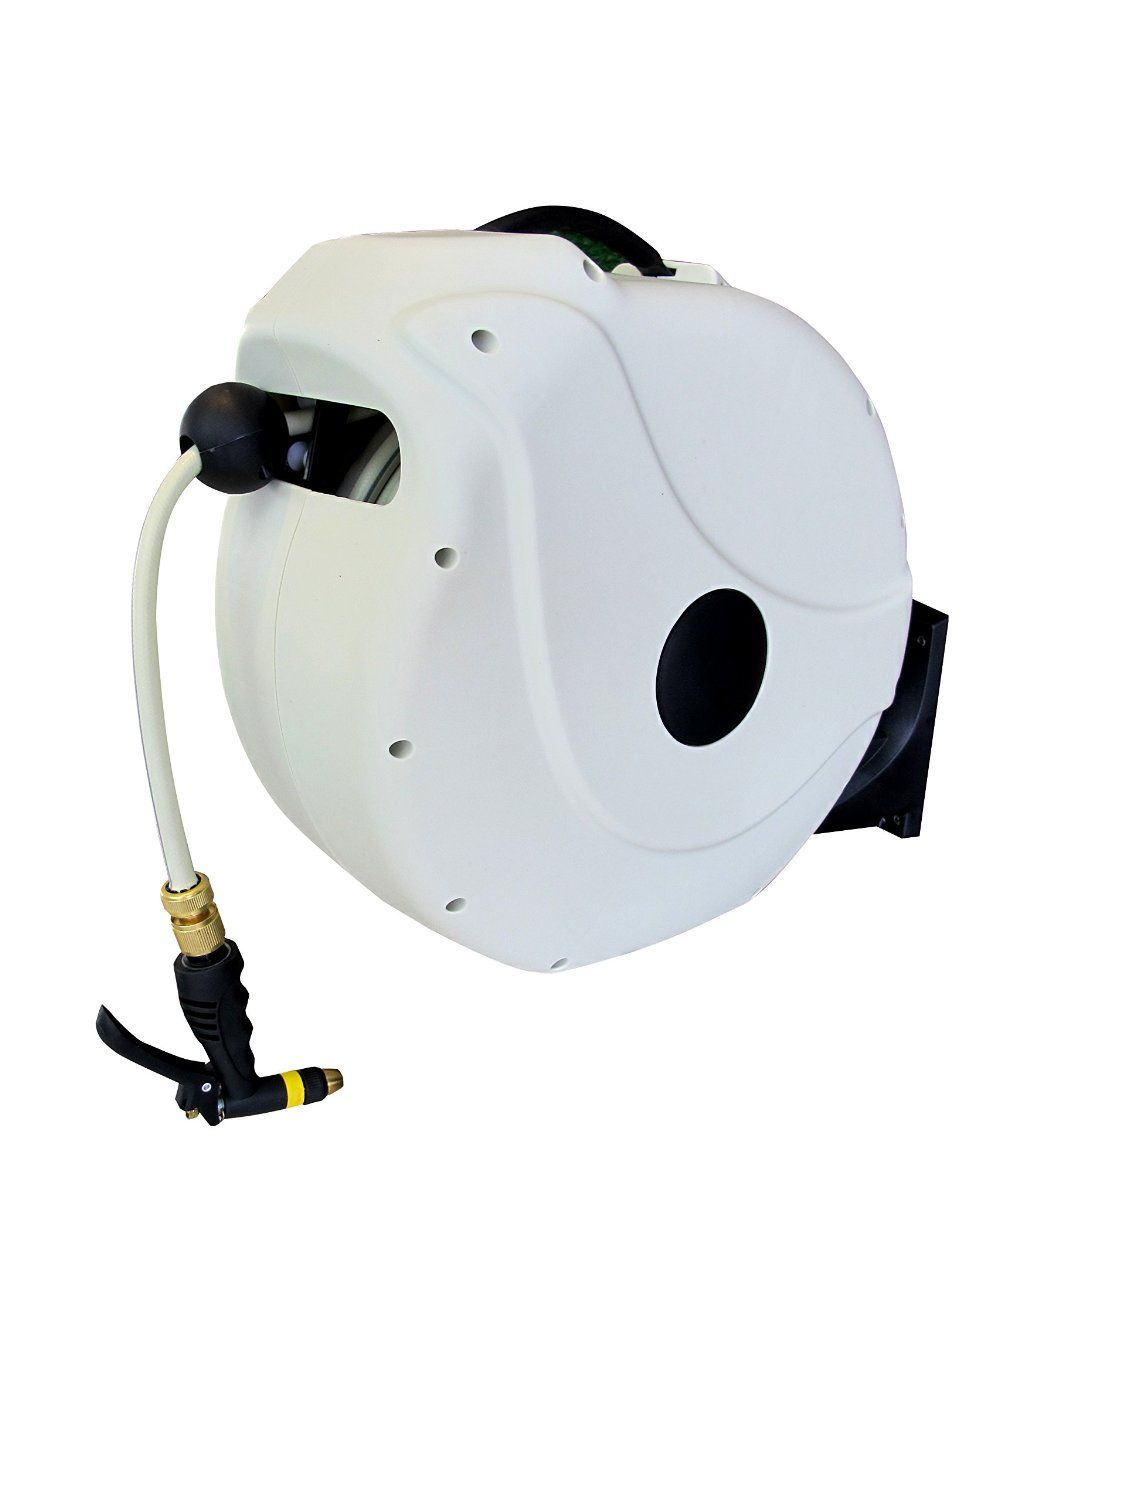 Amazon.com : Sunneday Retractable Water Hose Reel, 82 ...